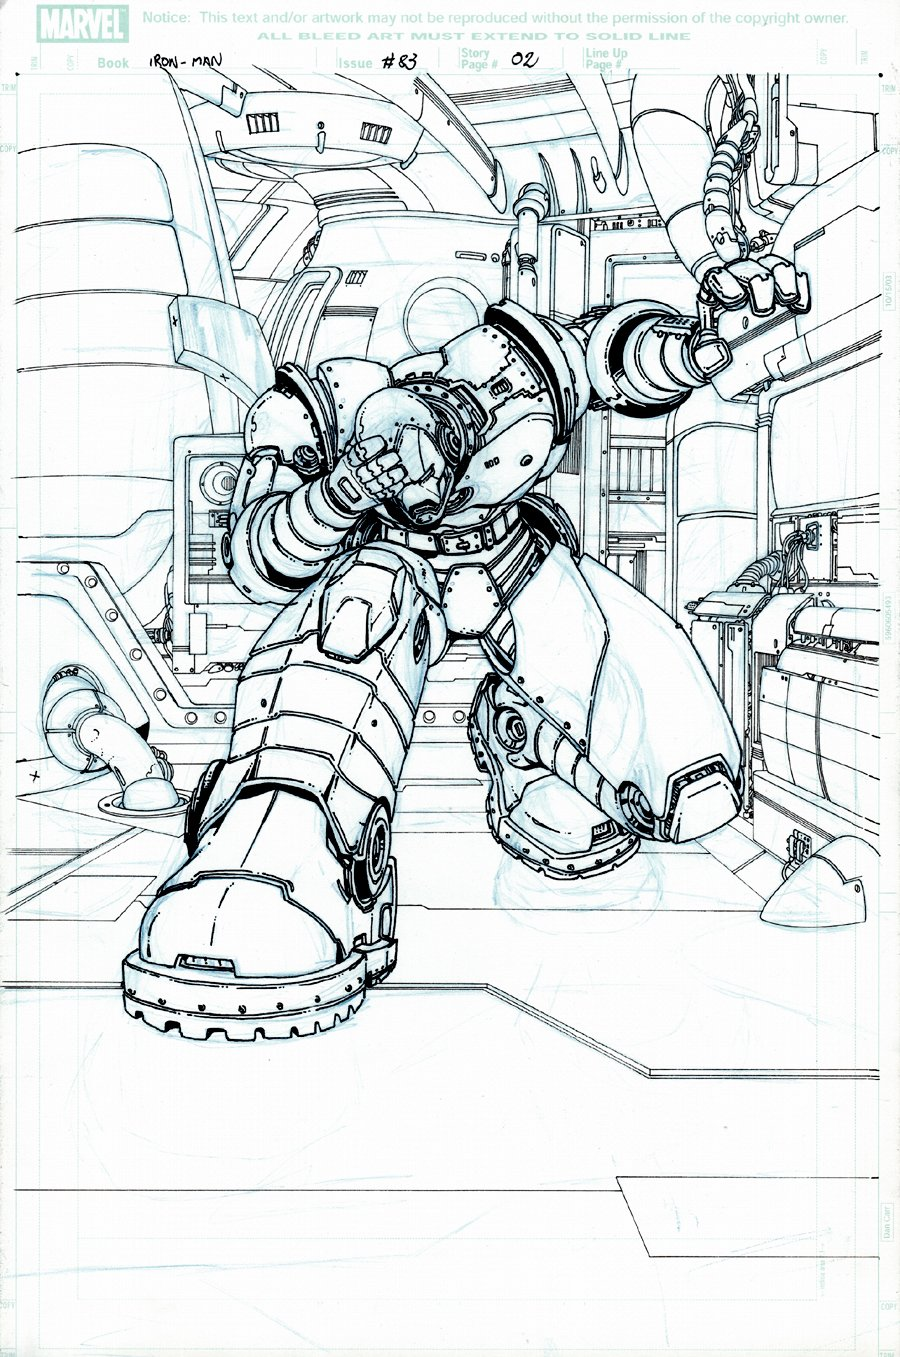 Iron Man #83 p 2 SOLD LIVE ON 'DUELING DEALERS PRO-AM' EPISODE #7 PODCAST ON 9-14-2021 (RE-WATCH THIS FUNNY ART SELLING SHOW HERE)